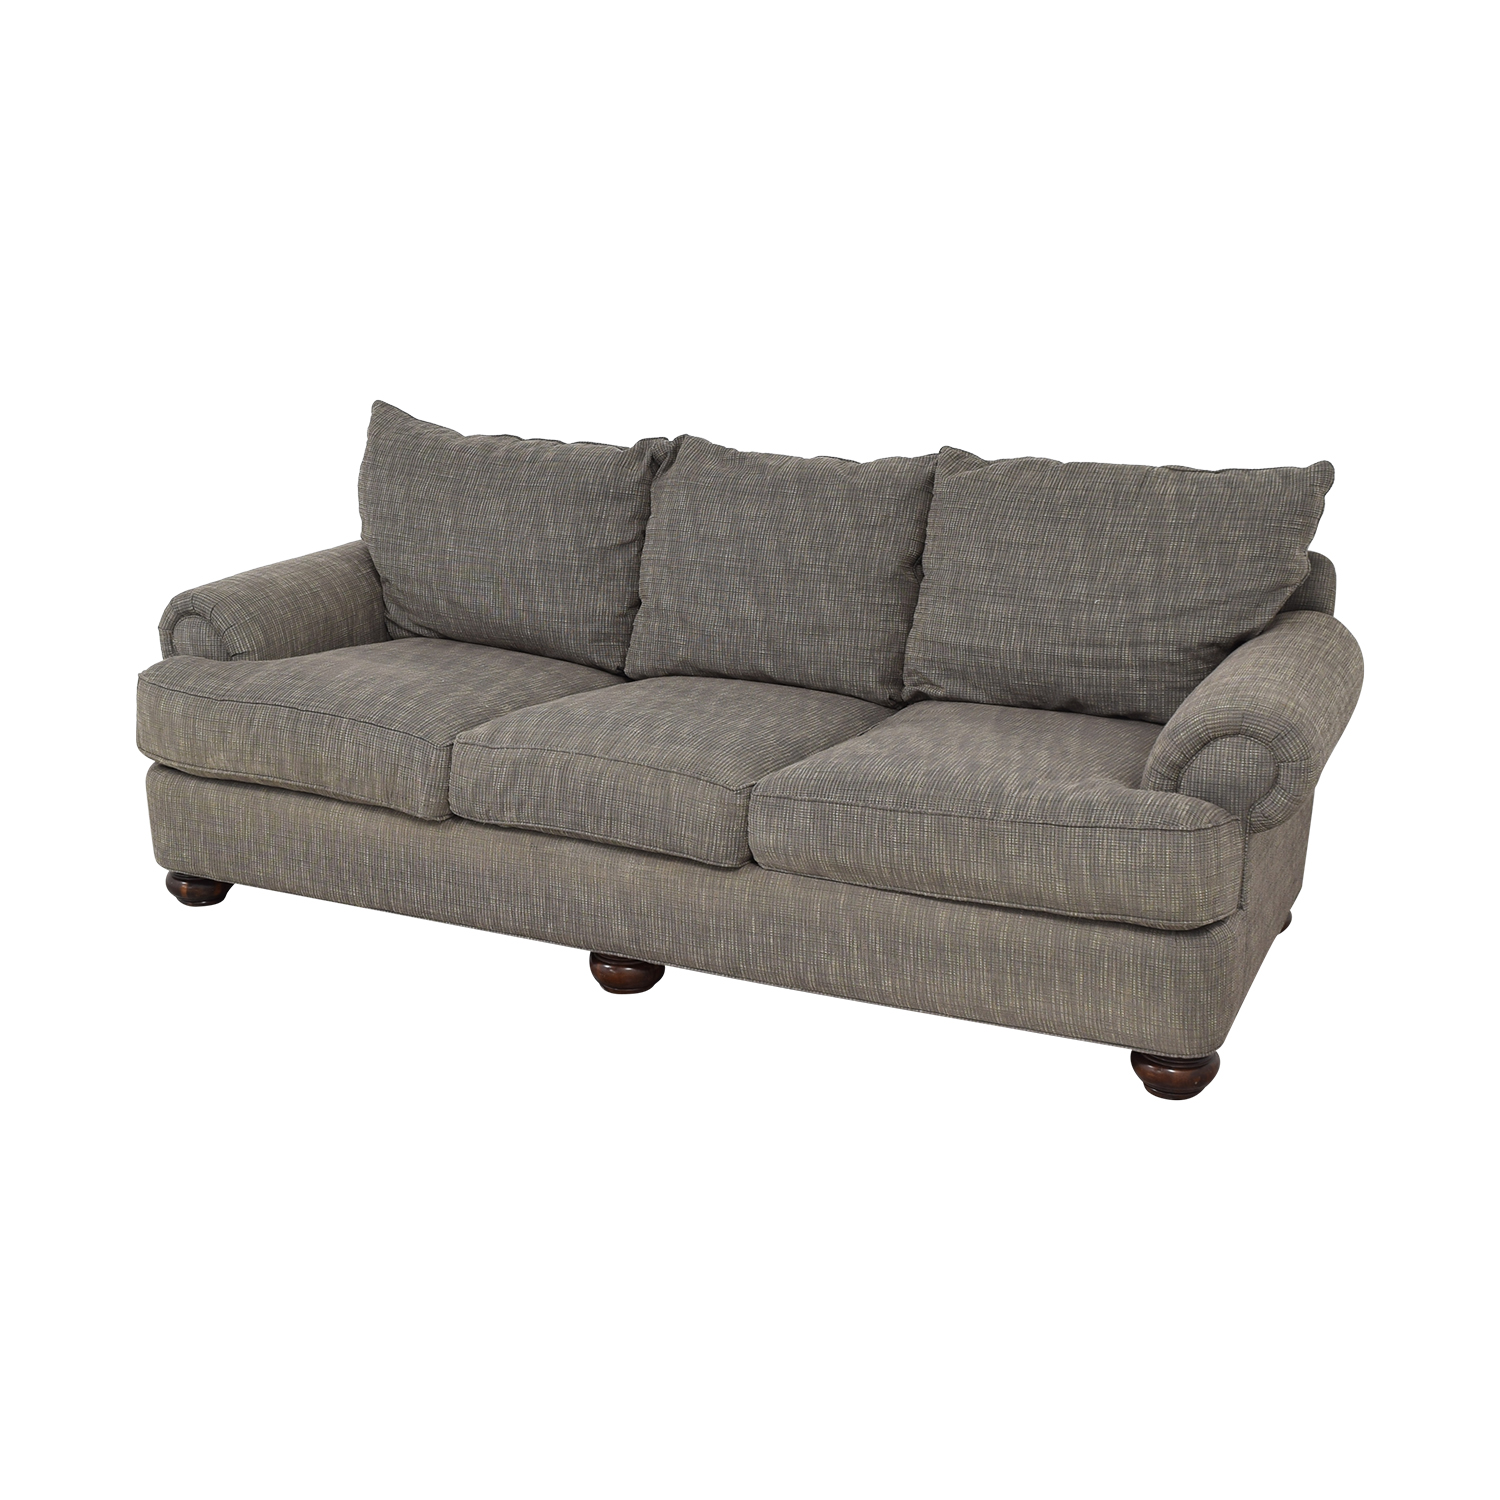 Thomasville Oversize Three Cushion Sofa / Classic Sofas